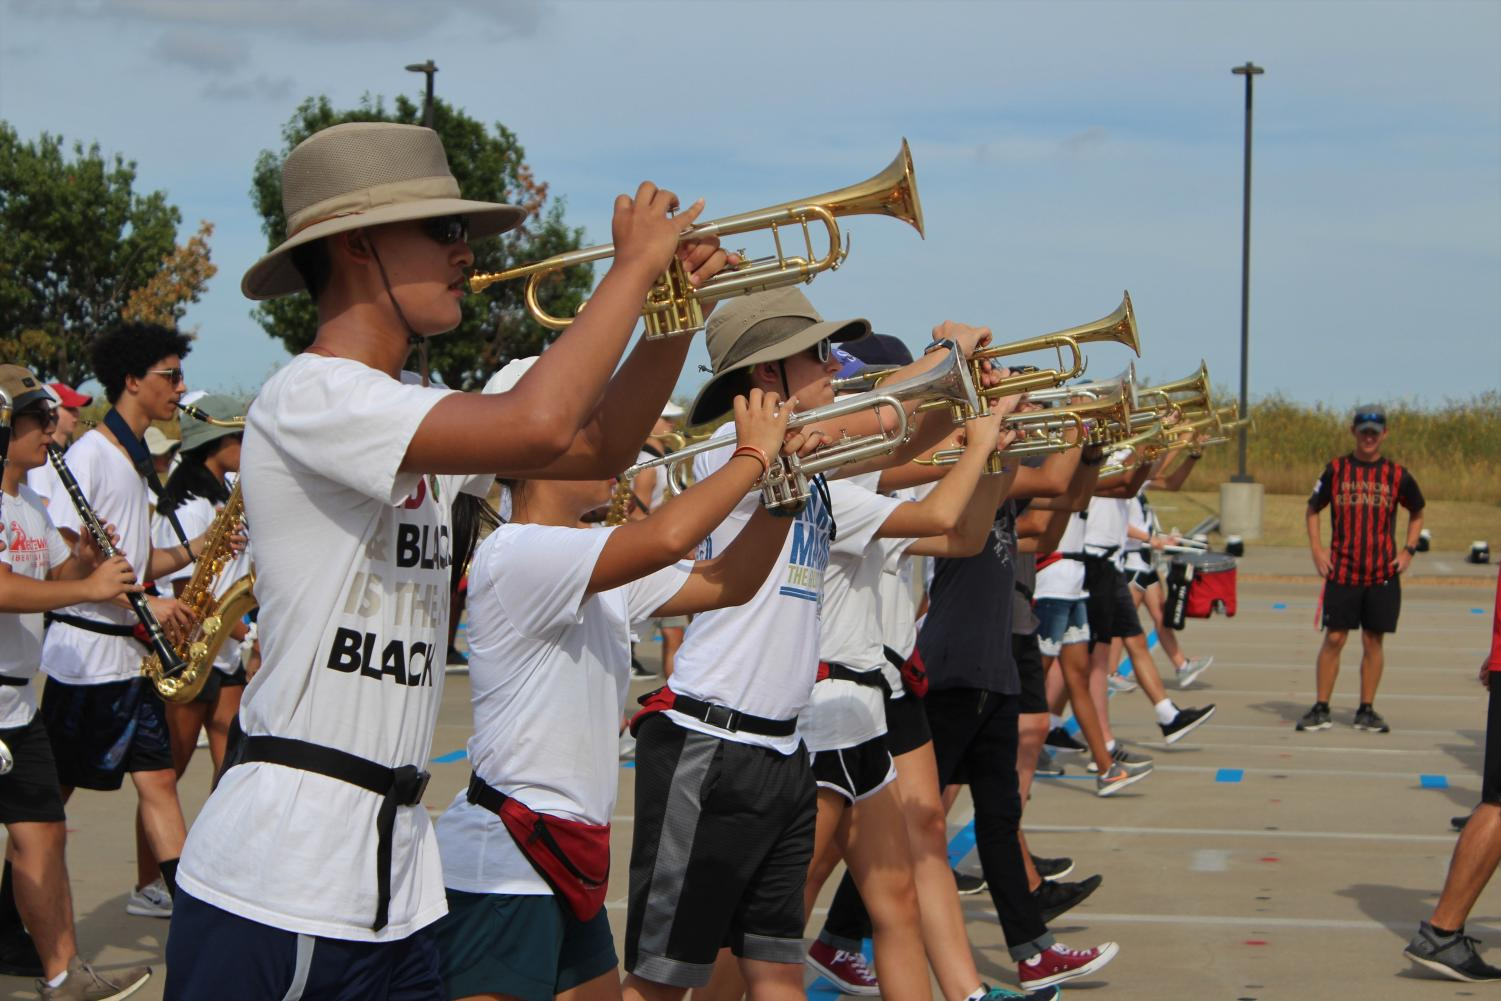 Band students practice their marching routine in the parking lot at a rehearsal after school. Marching band isn't the only program underway: students looking to try out for jazz band have the chance to audition this week.